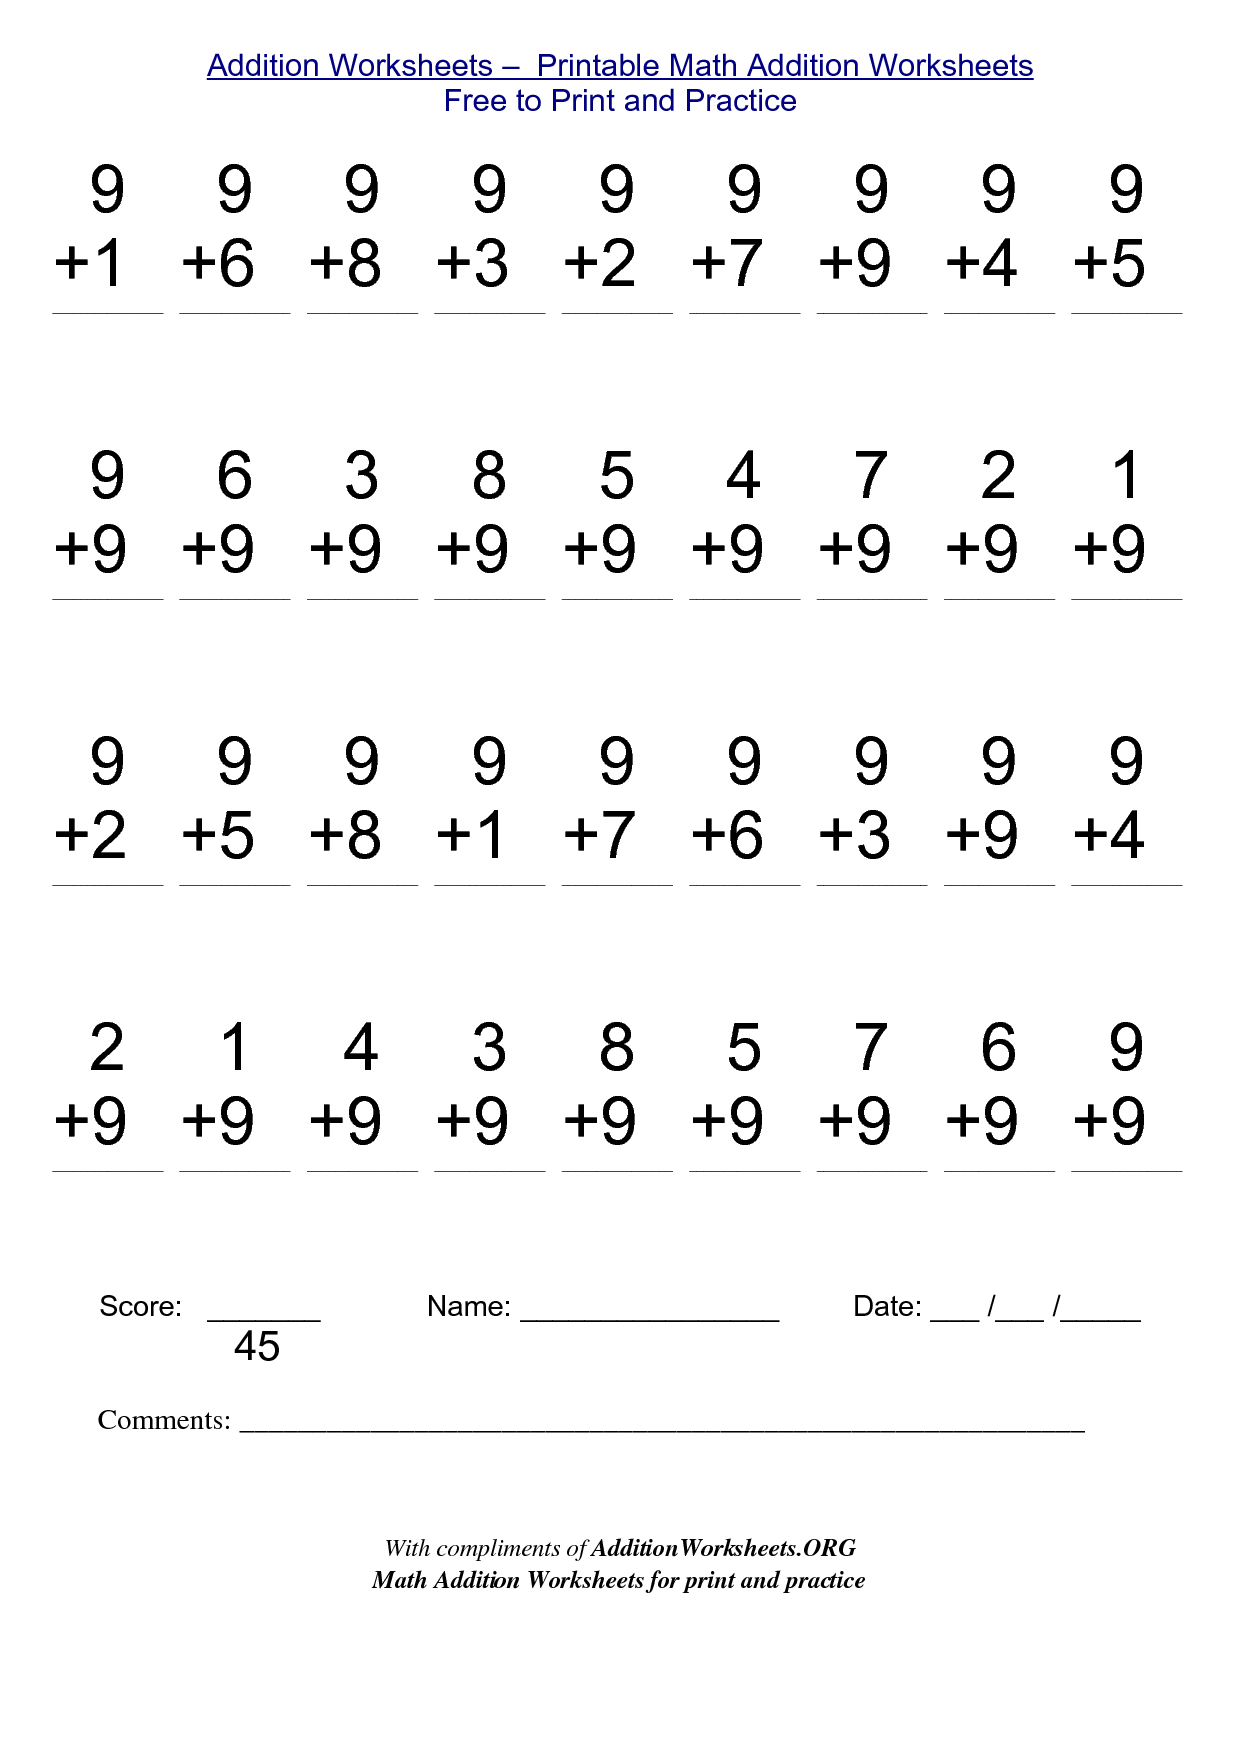 Worksheets Online Kumon Worksheets 2nd grade stuff to print addition worksheets printable math free print